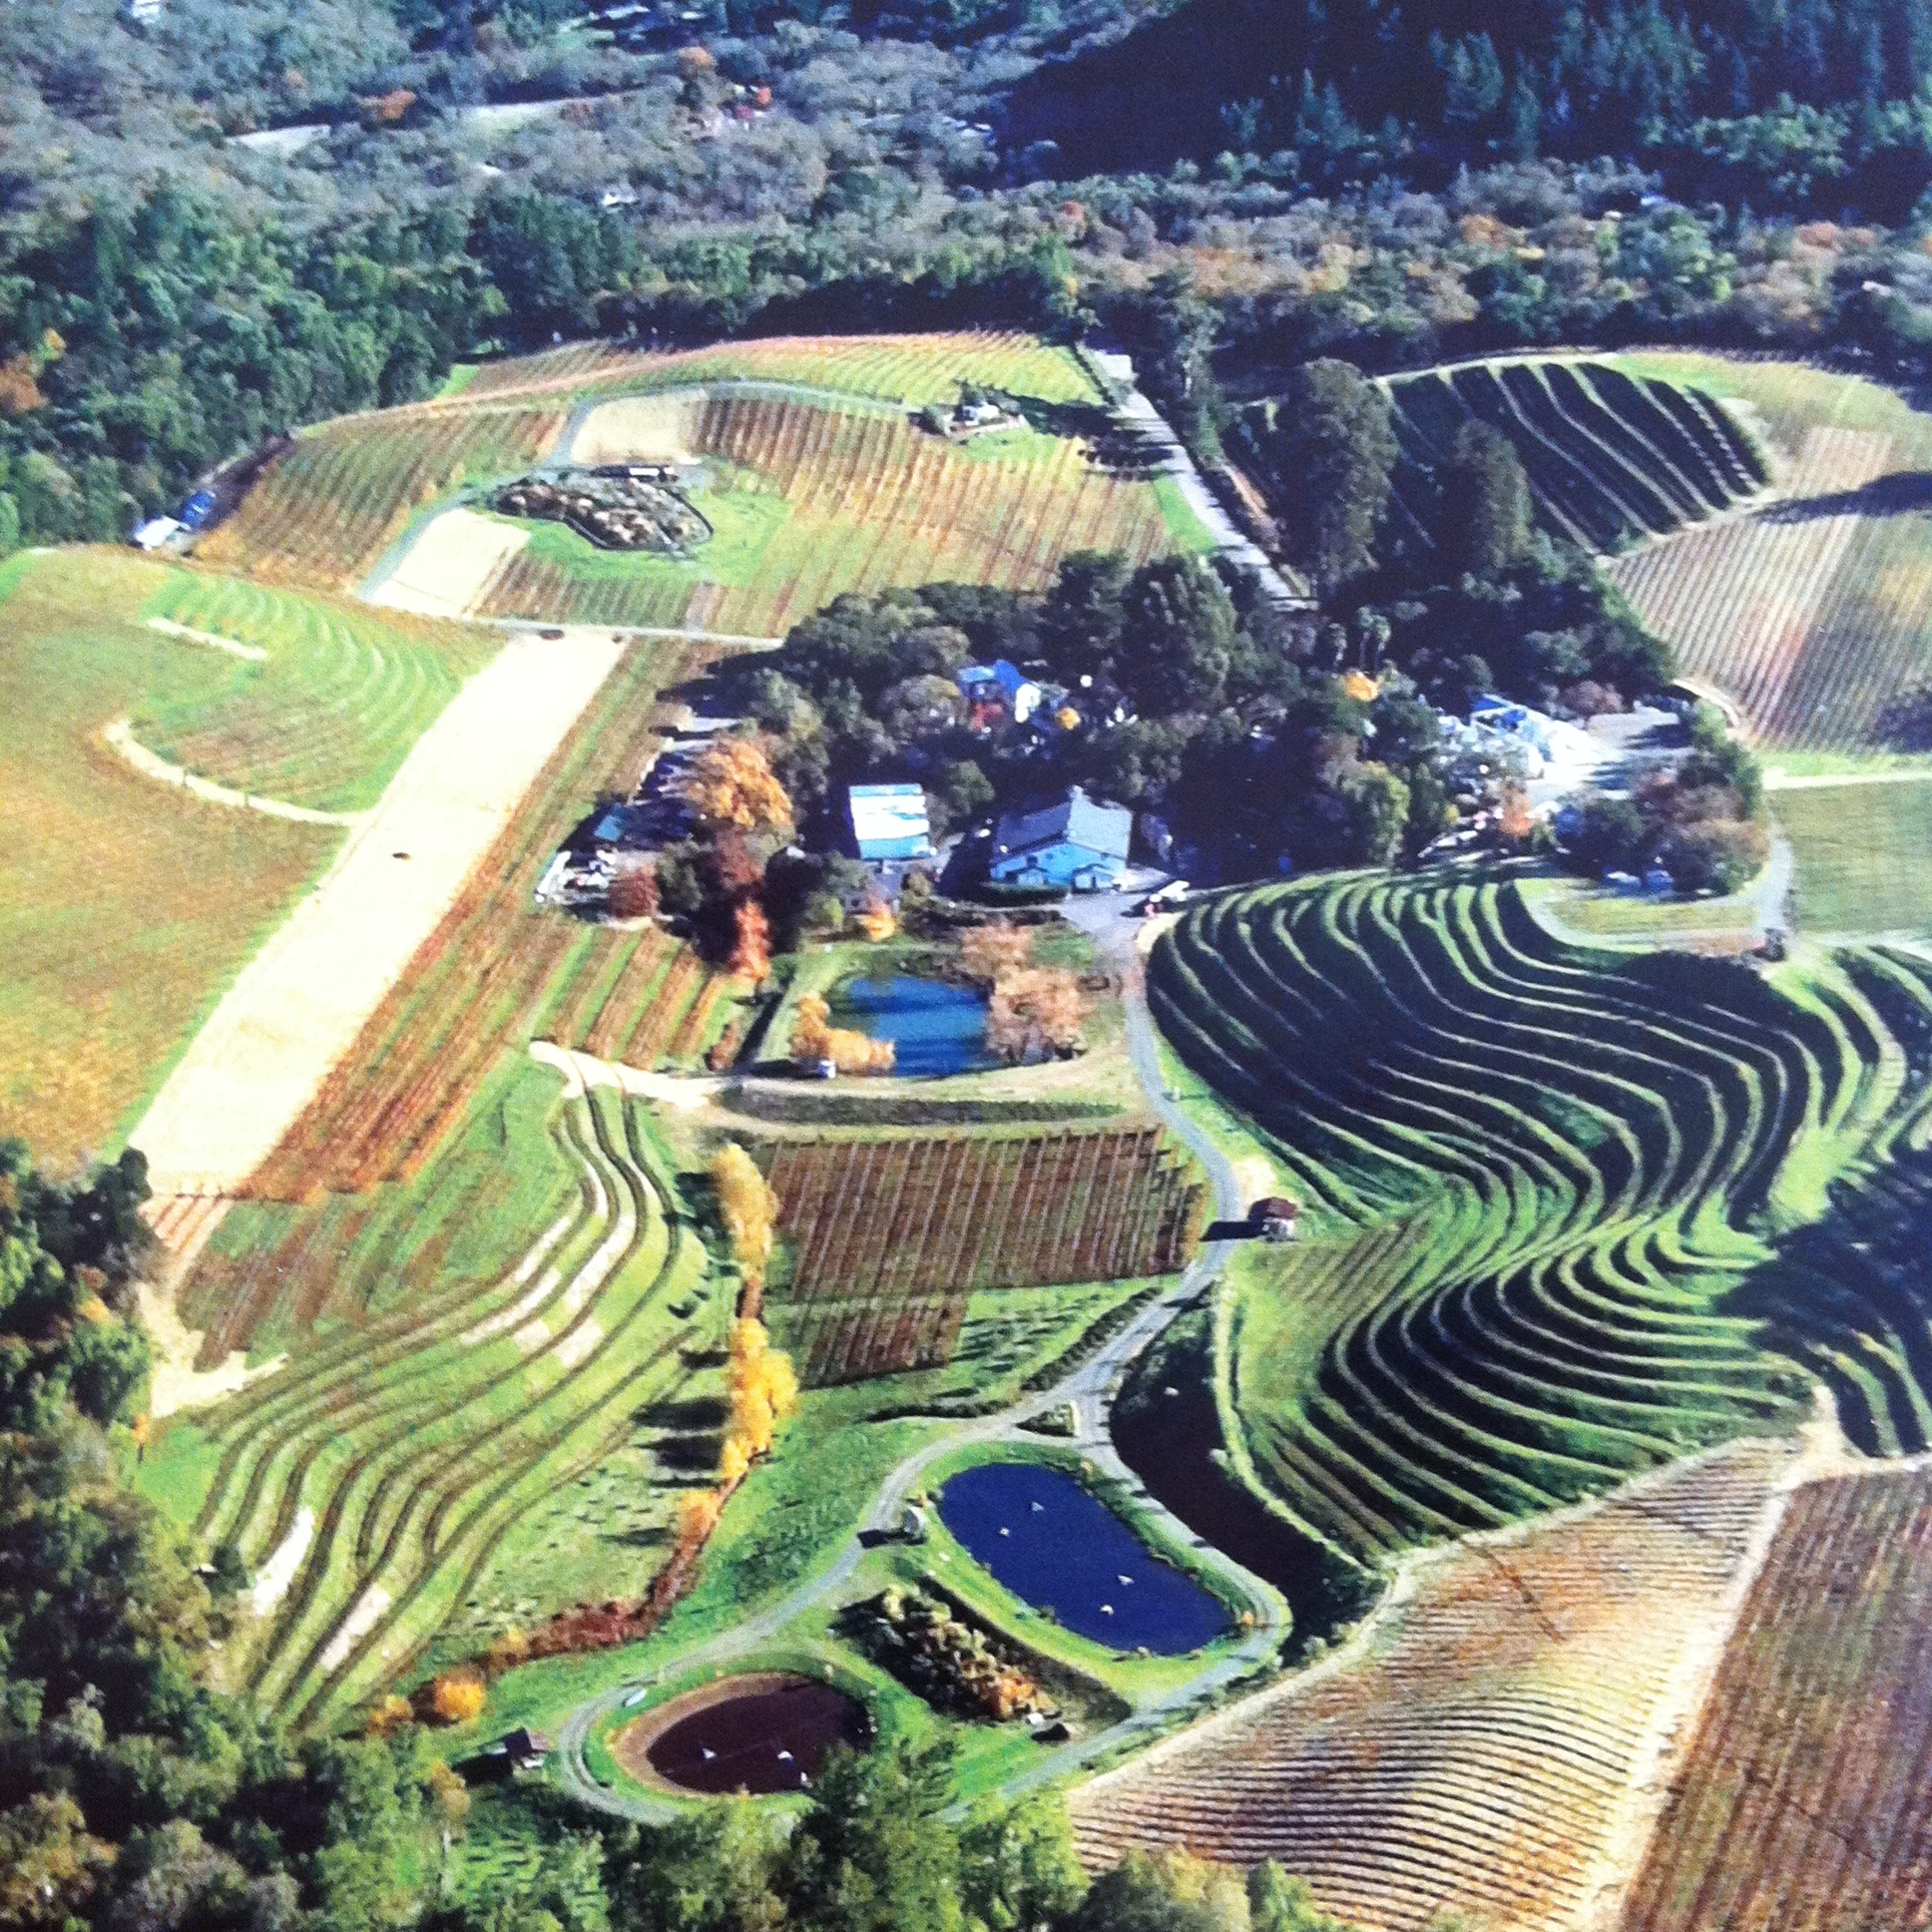 An ariel view of the Benziger Family Winery in Glen Allen, California, USA